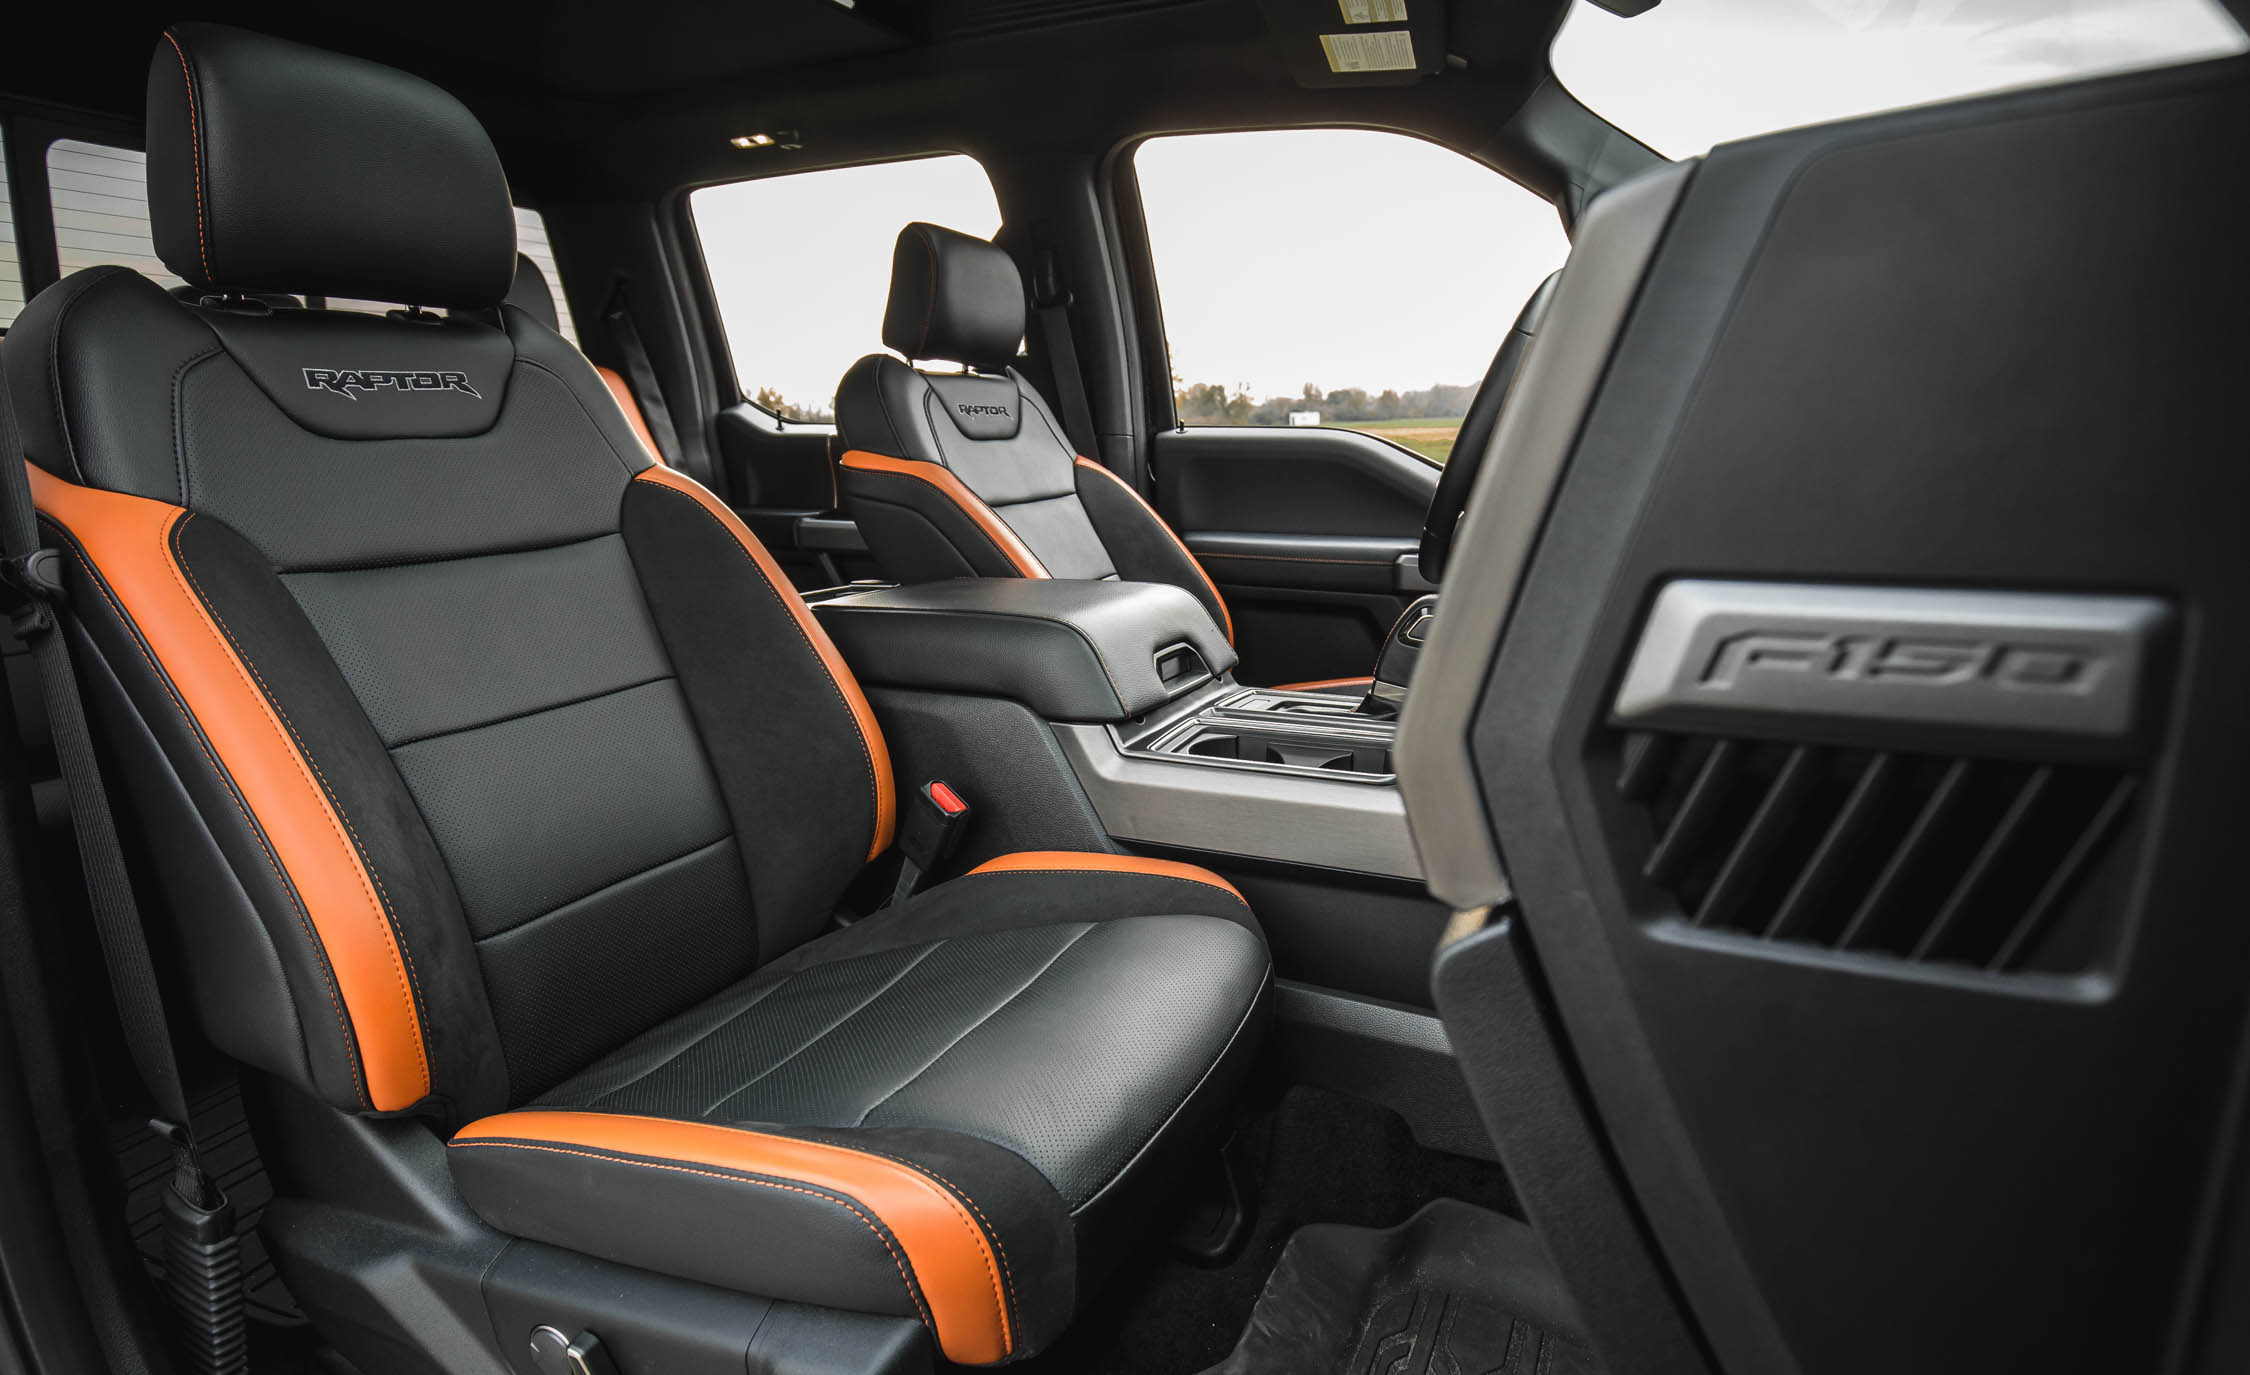 2017 Ford F 150 Raptor SuperCrew Interior Seats Front (Photo 31 of 47)